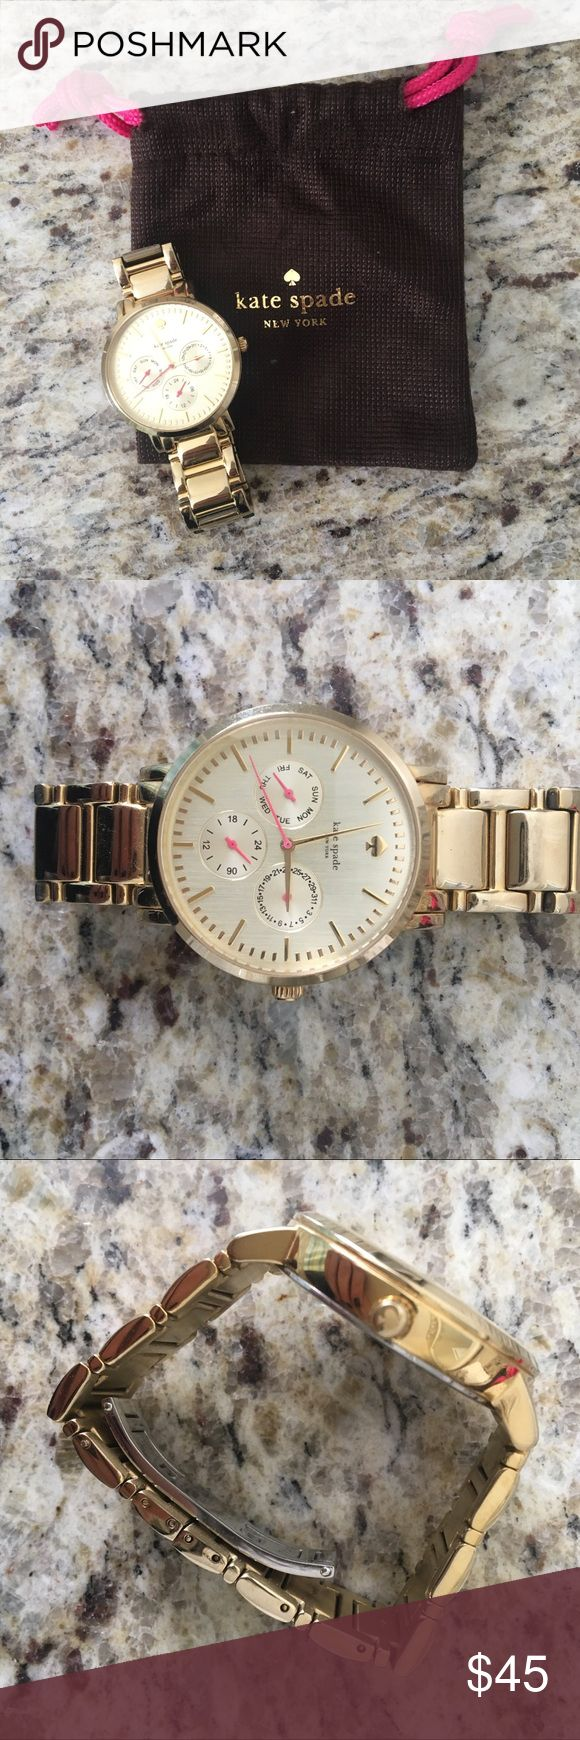 Kate Spade Gold Watch Gold Kate Spade watch, gently used! Two links removed - can send measurements / look for links if interested.  Dust bag included. kate spade Accessories Watches